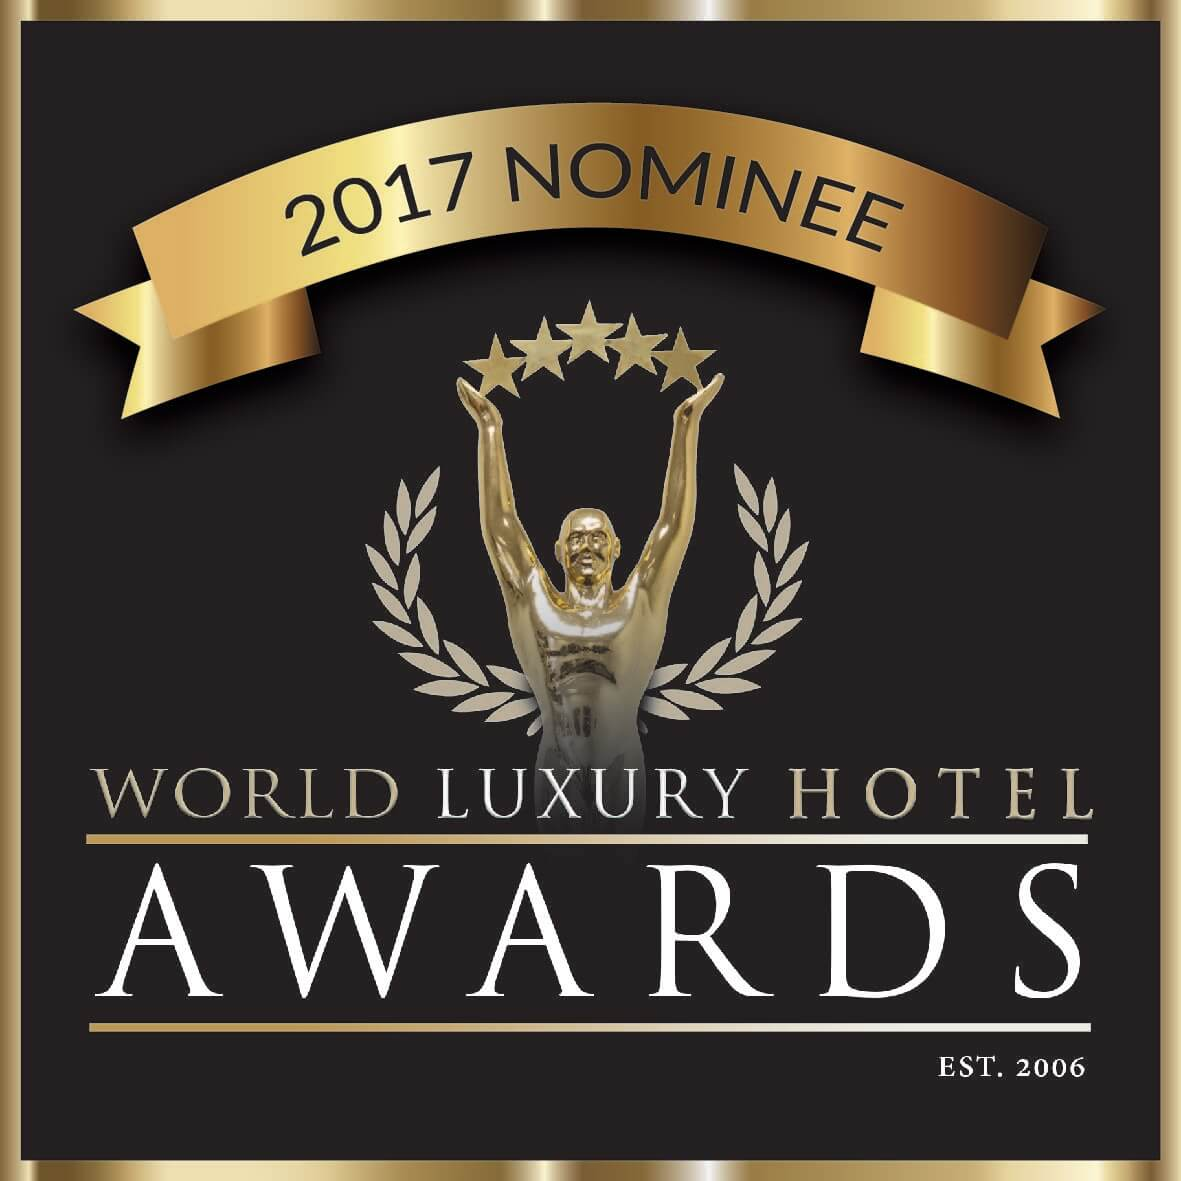 World luxury hotel awards buffalo thorn lodge for Luxury hotel awards